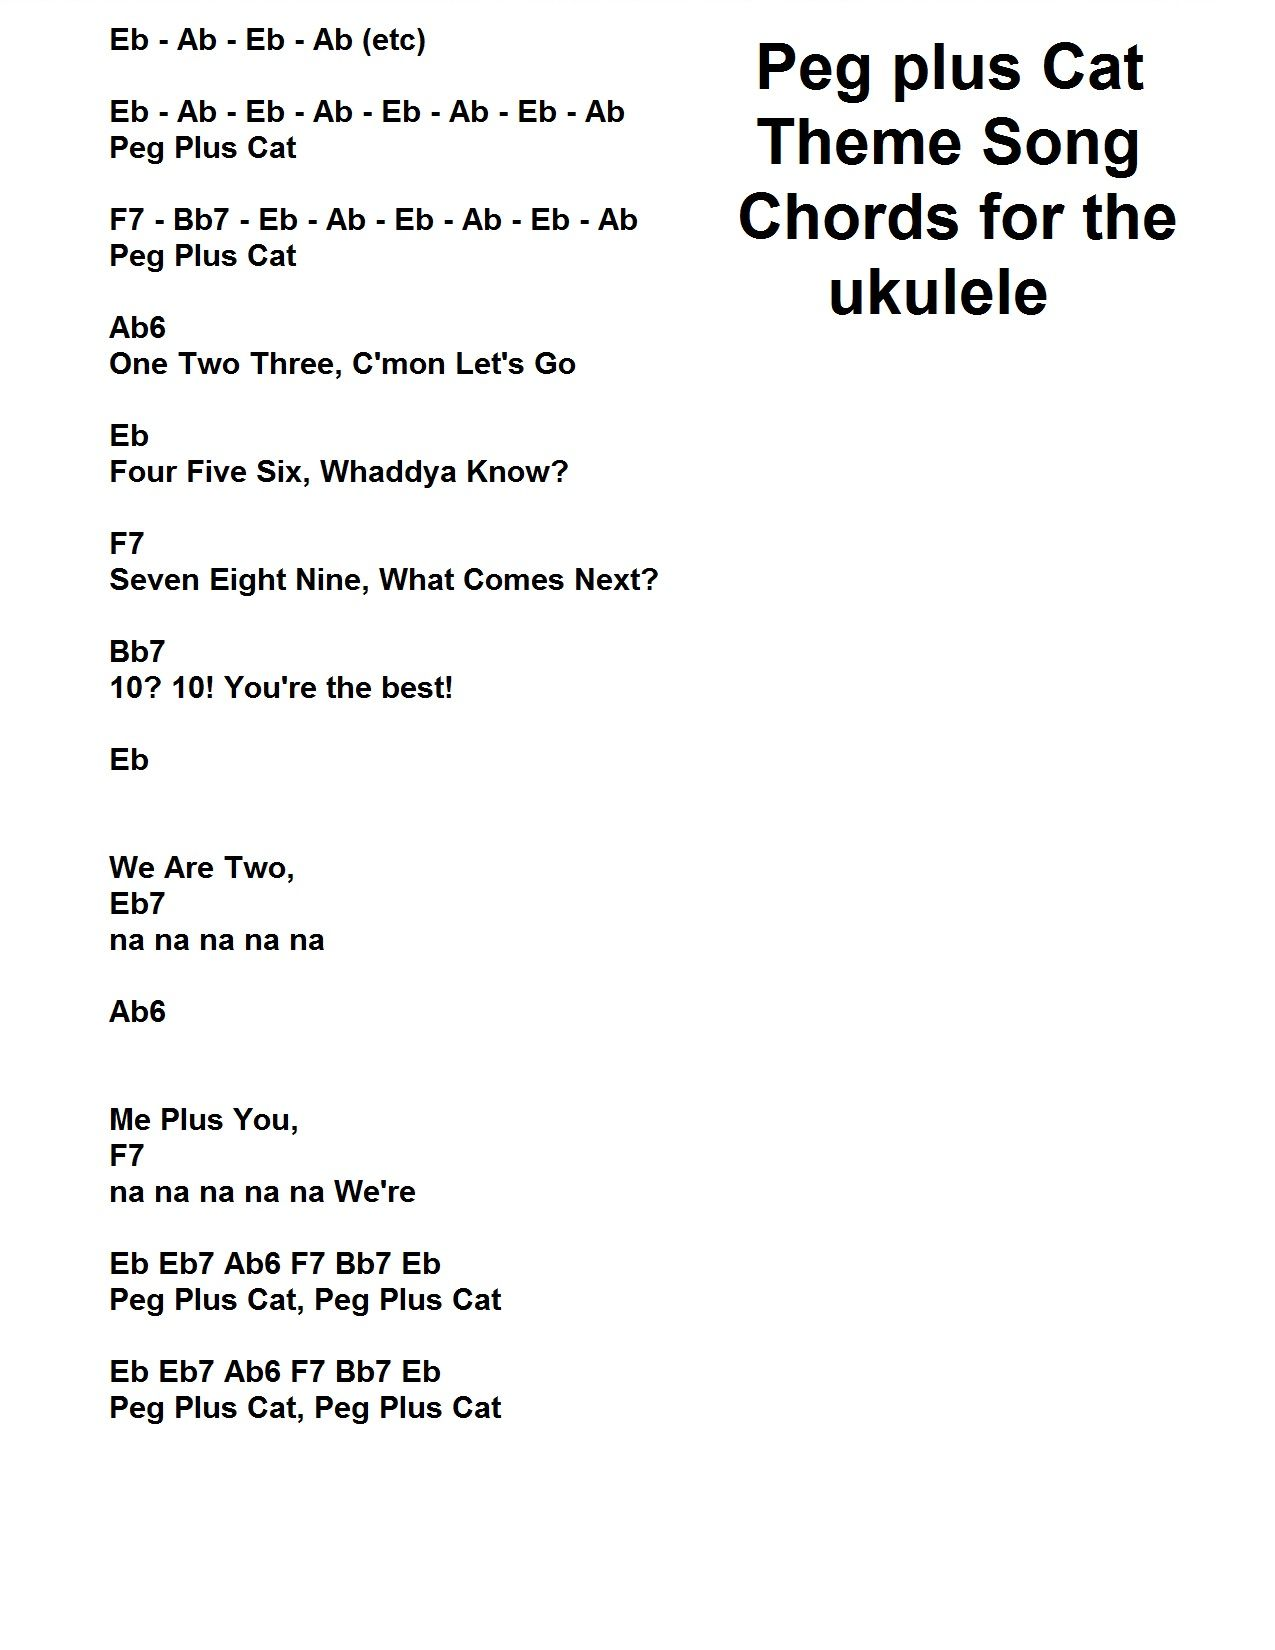 Peg Plus Cat Theme Song Chords For The Ukulele By J Walter